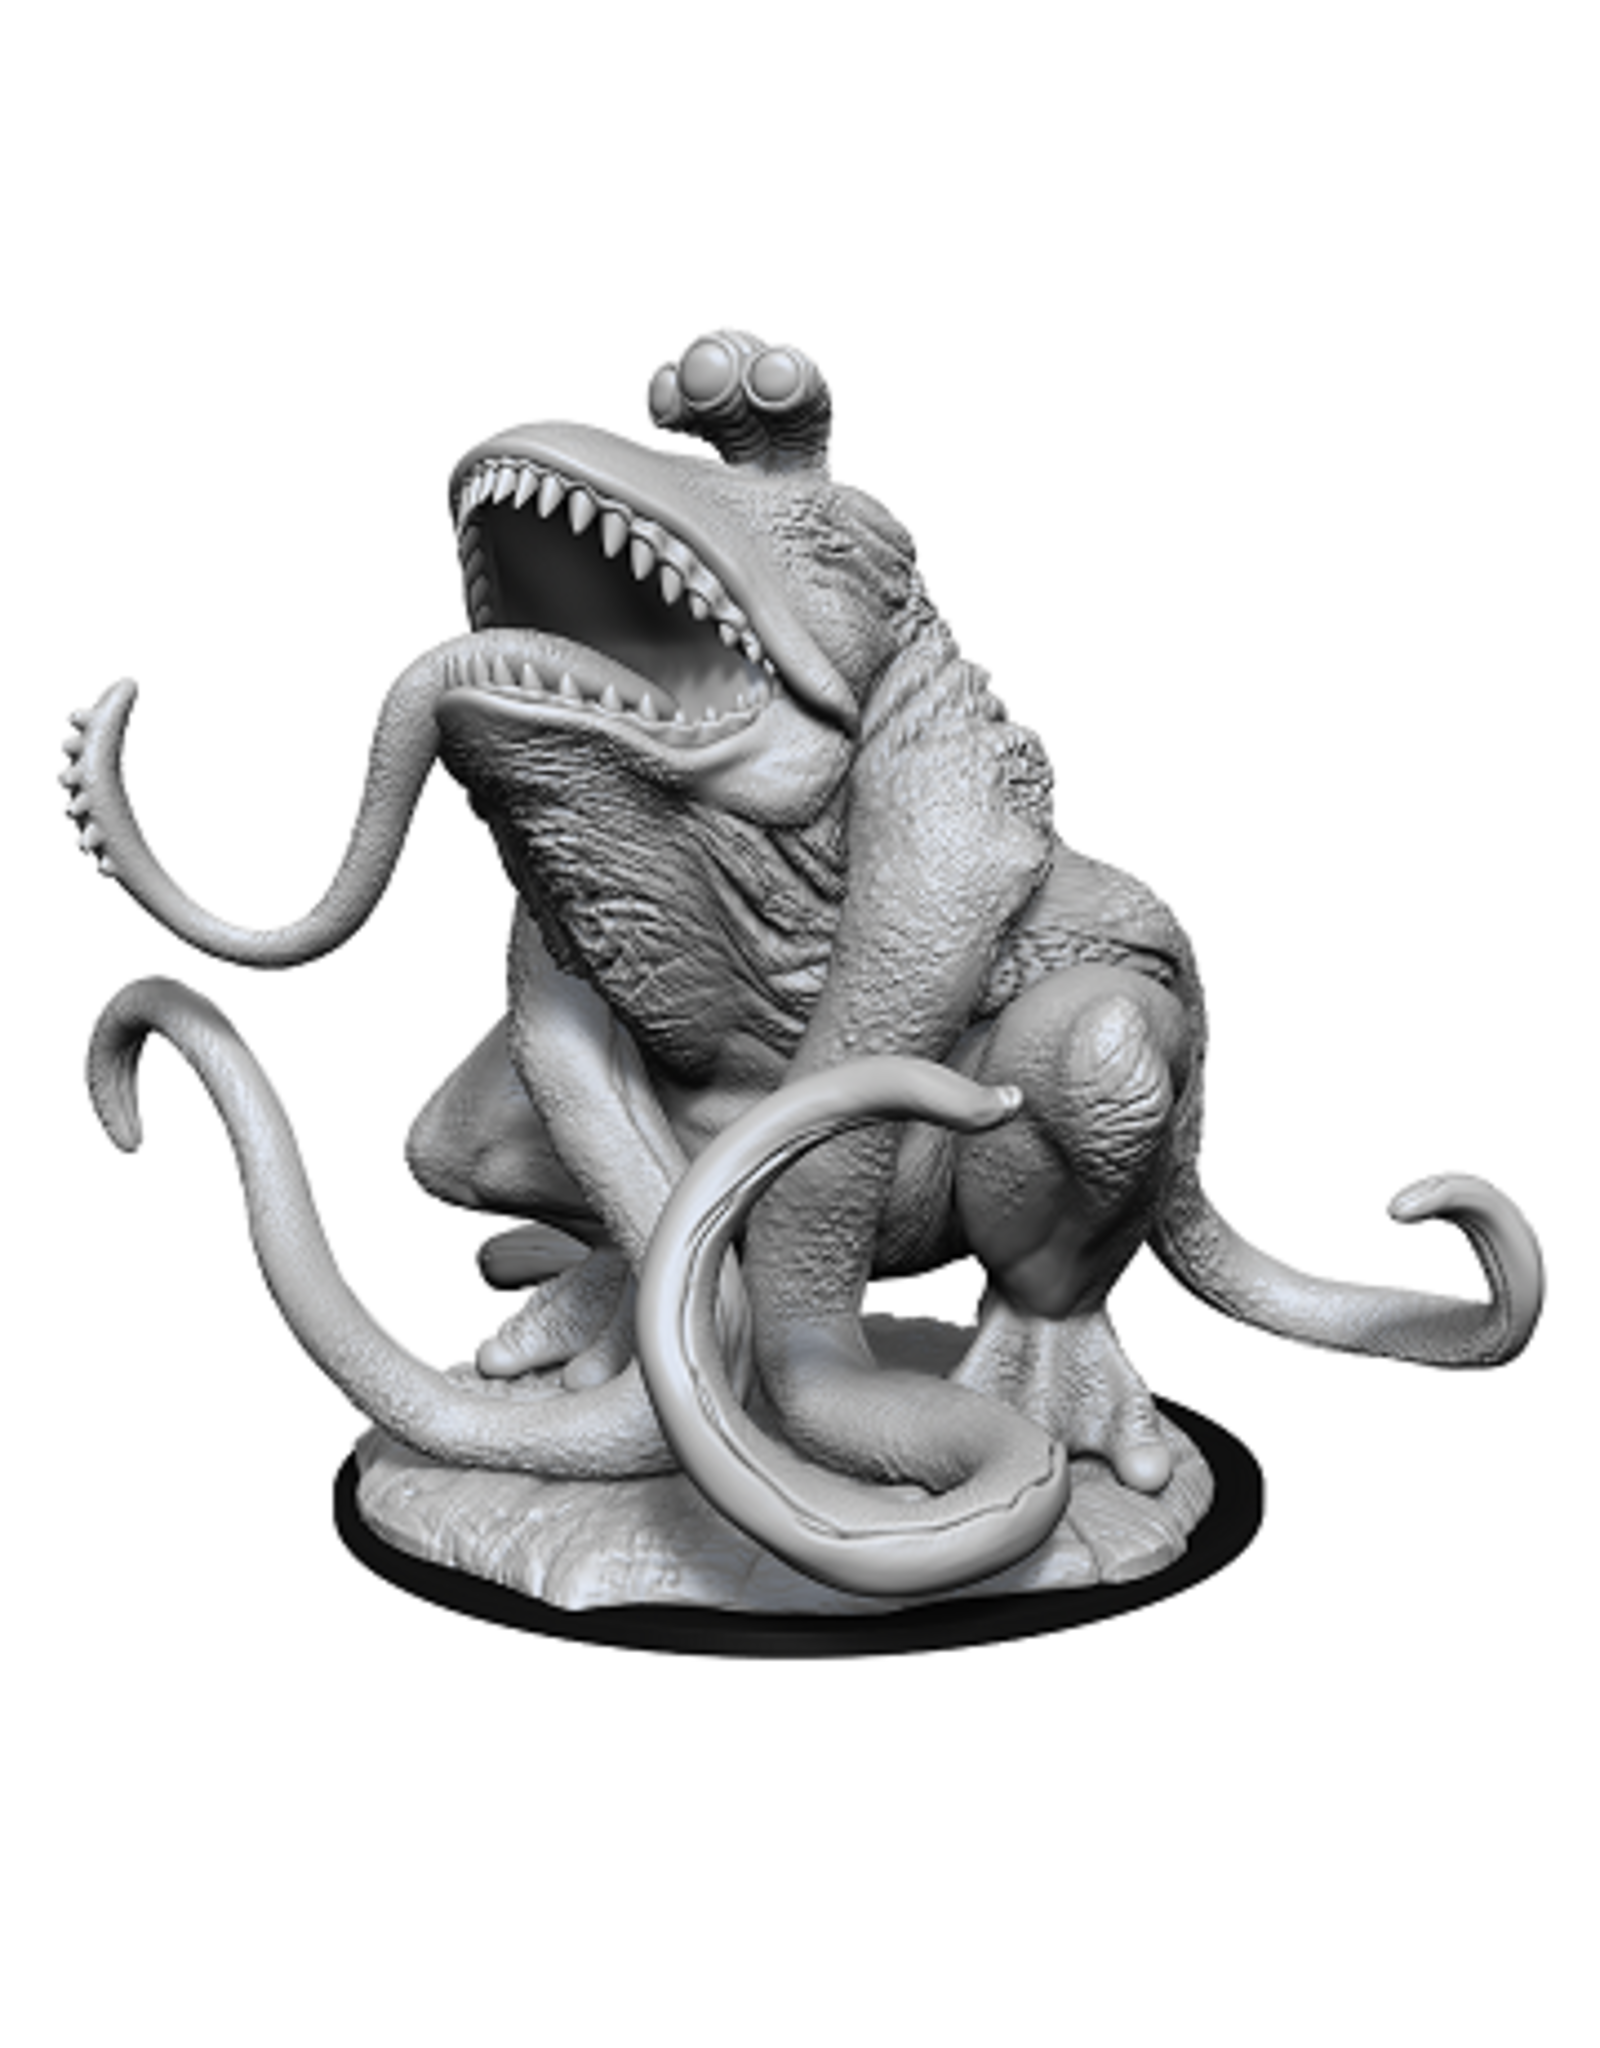 WizKids Dungeons and Dragons Unpainted Minis Wave 13 - Froghemoth